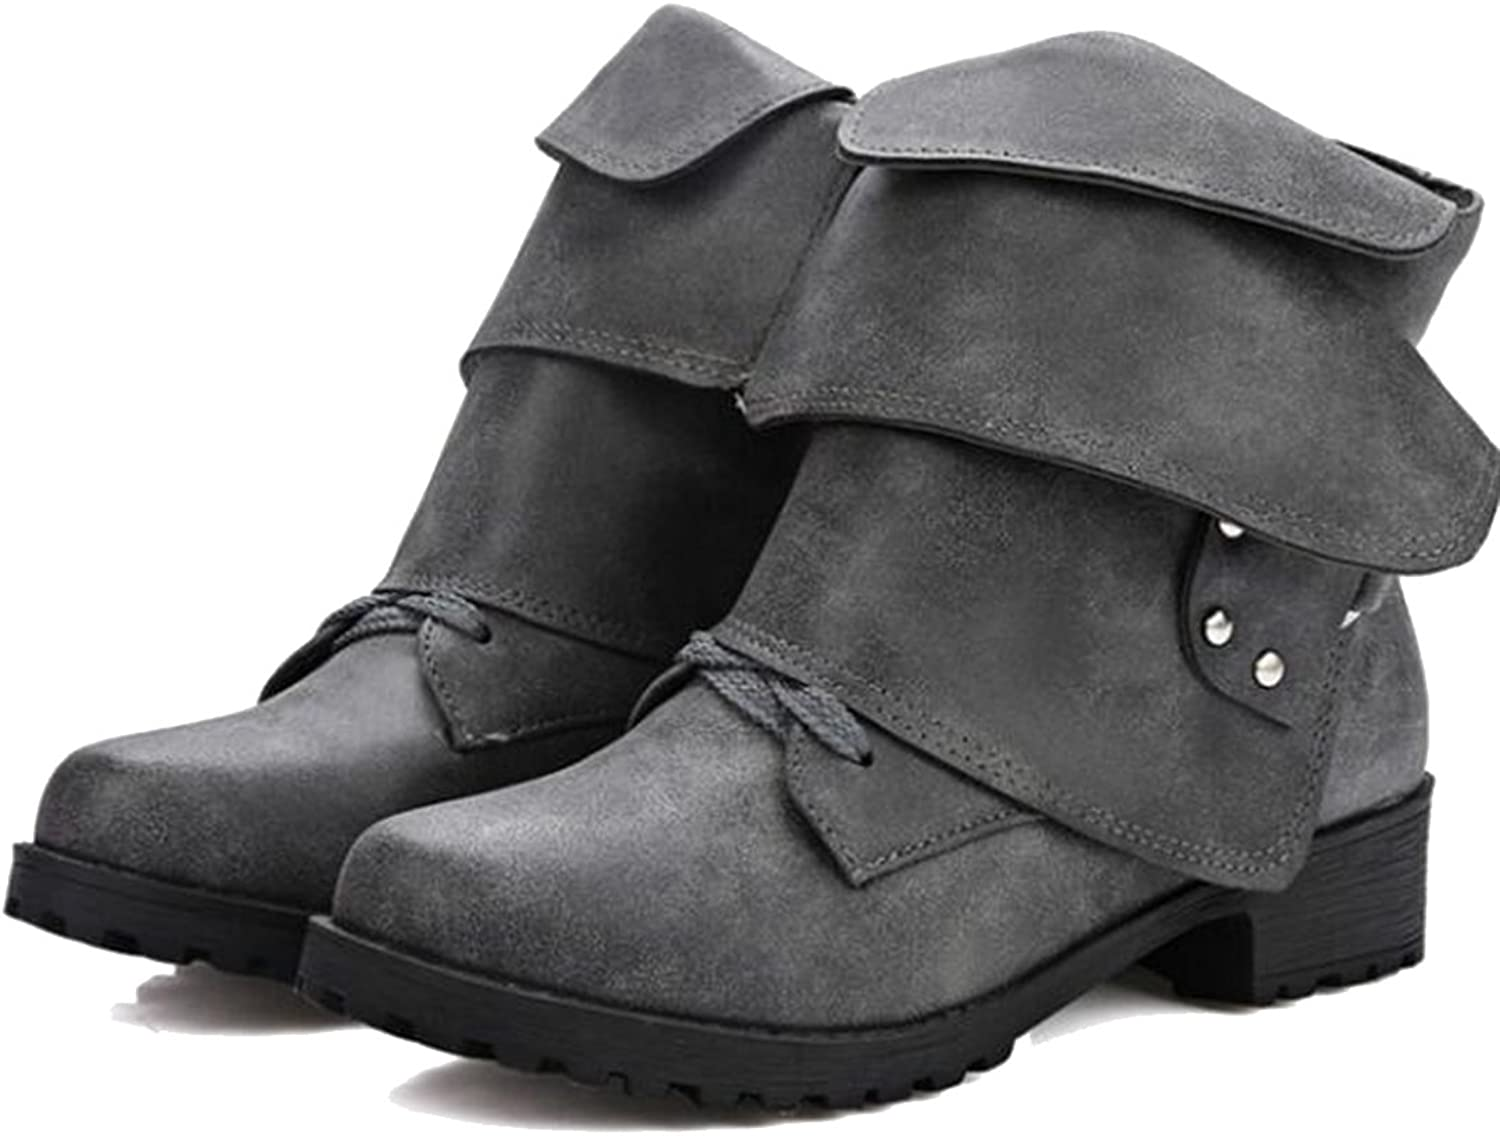 COVOYYAR Women's Vintage Rivet Buckle Lace Up Round Toe Ankle Boots Flat shoes